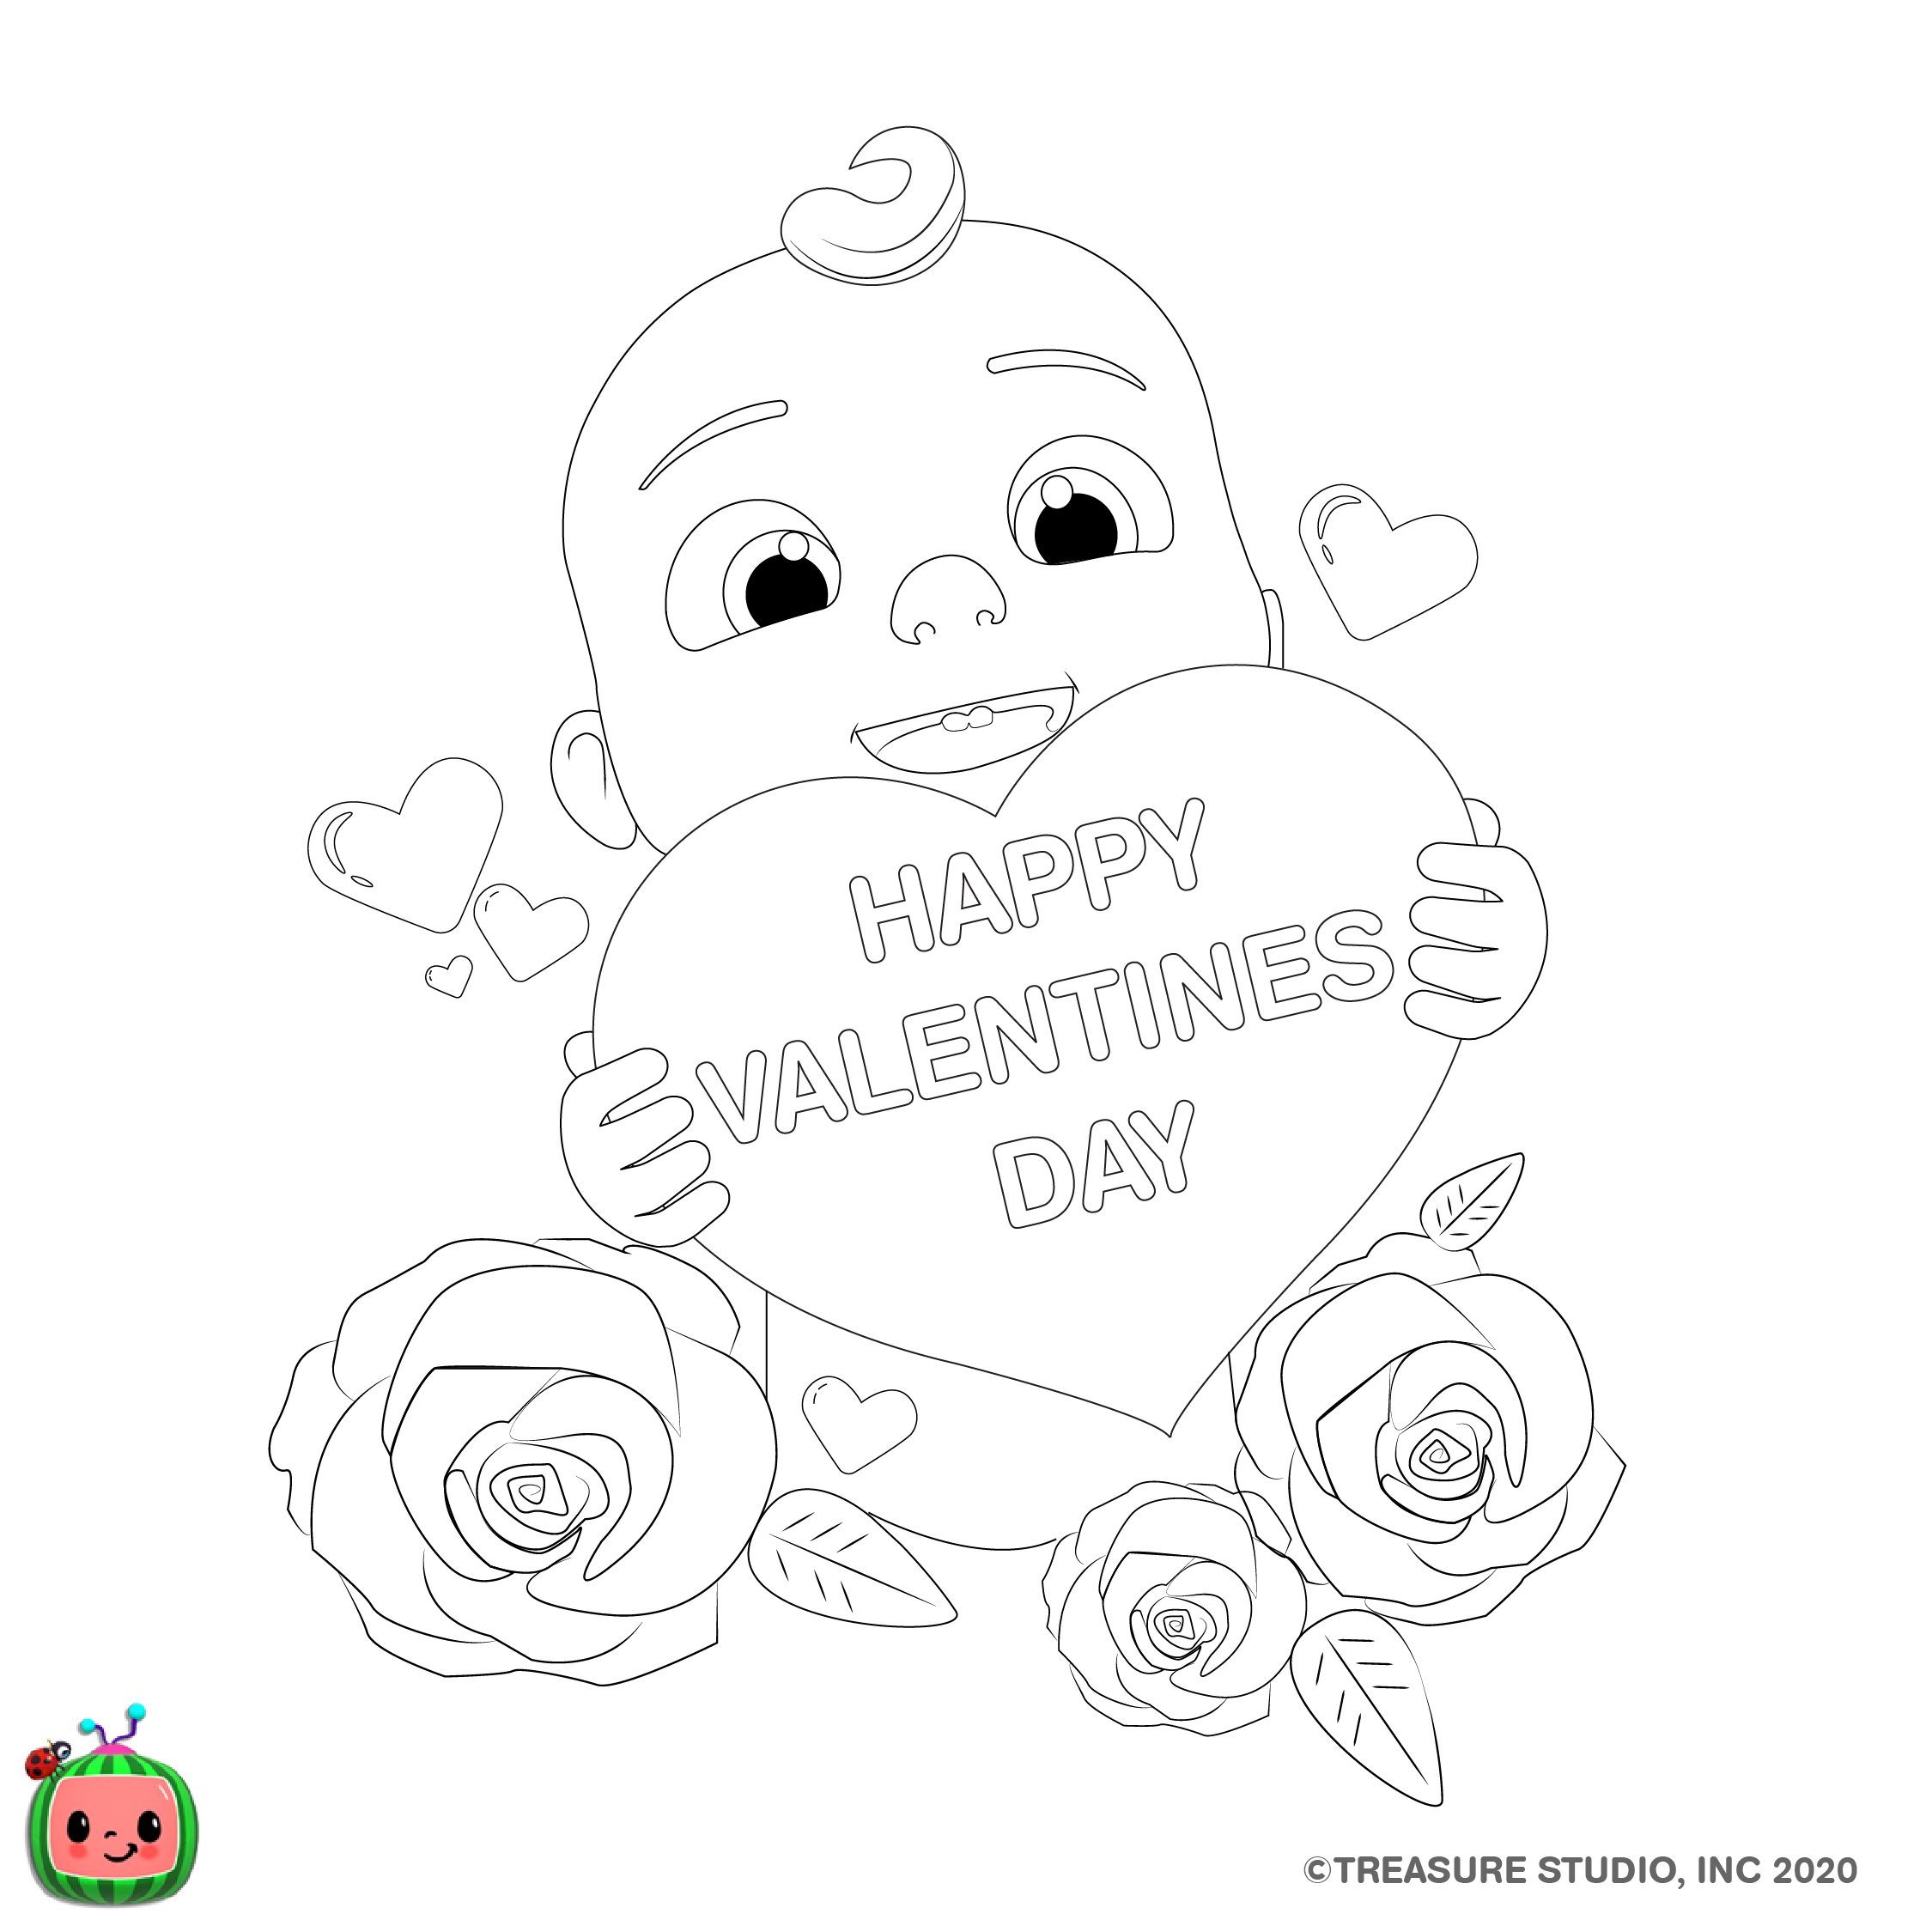 Other Coloring Pages — cocomelon.com